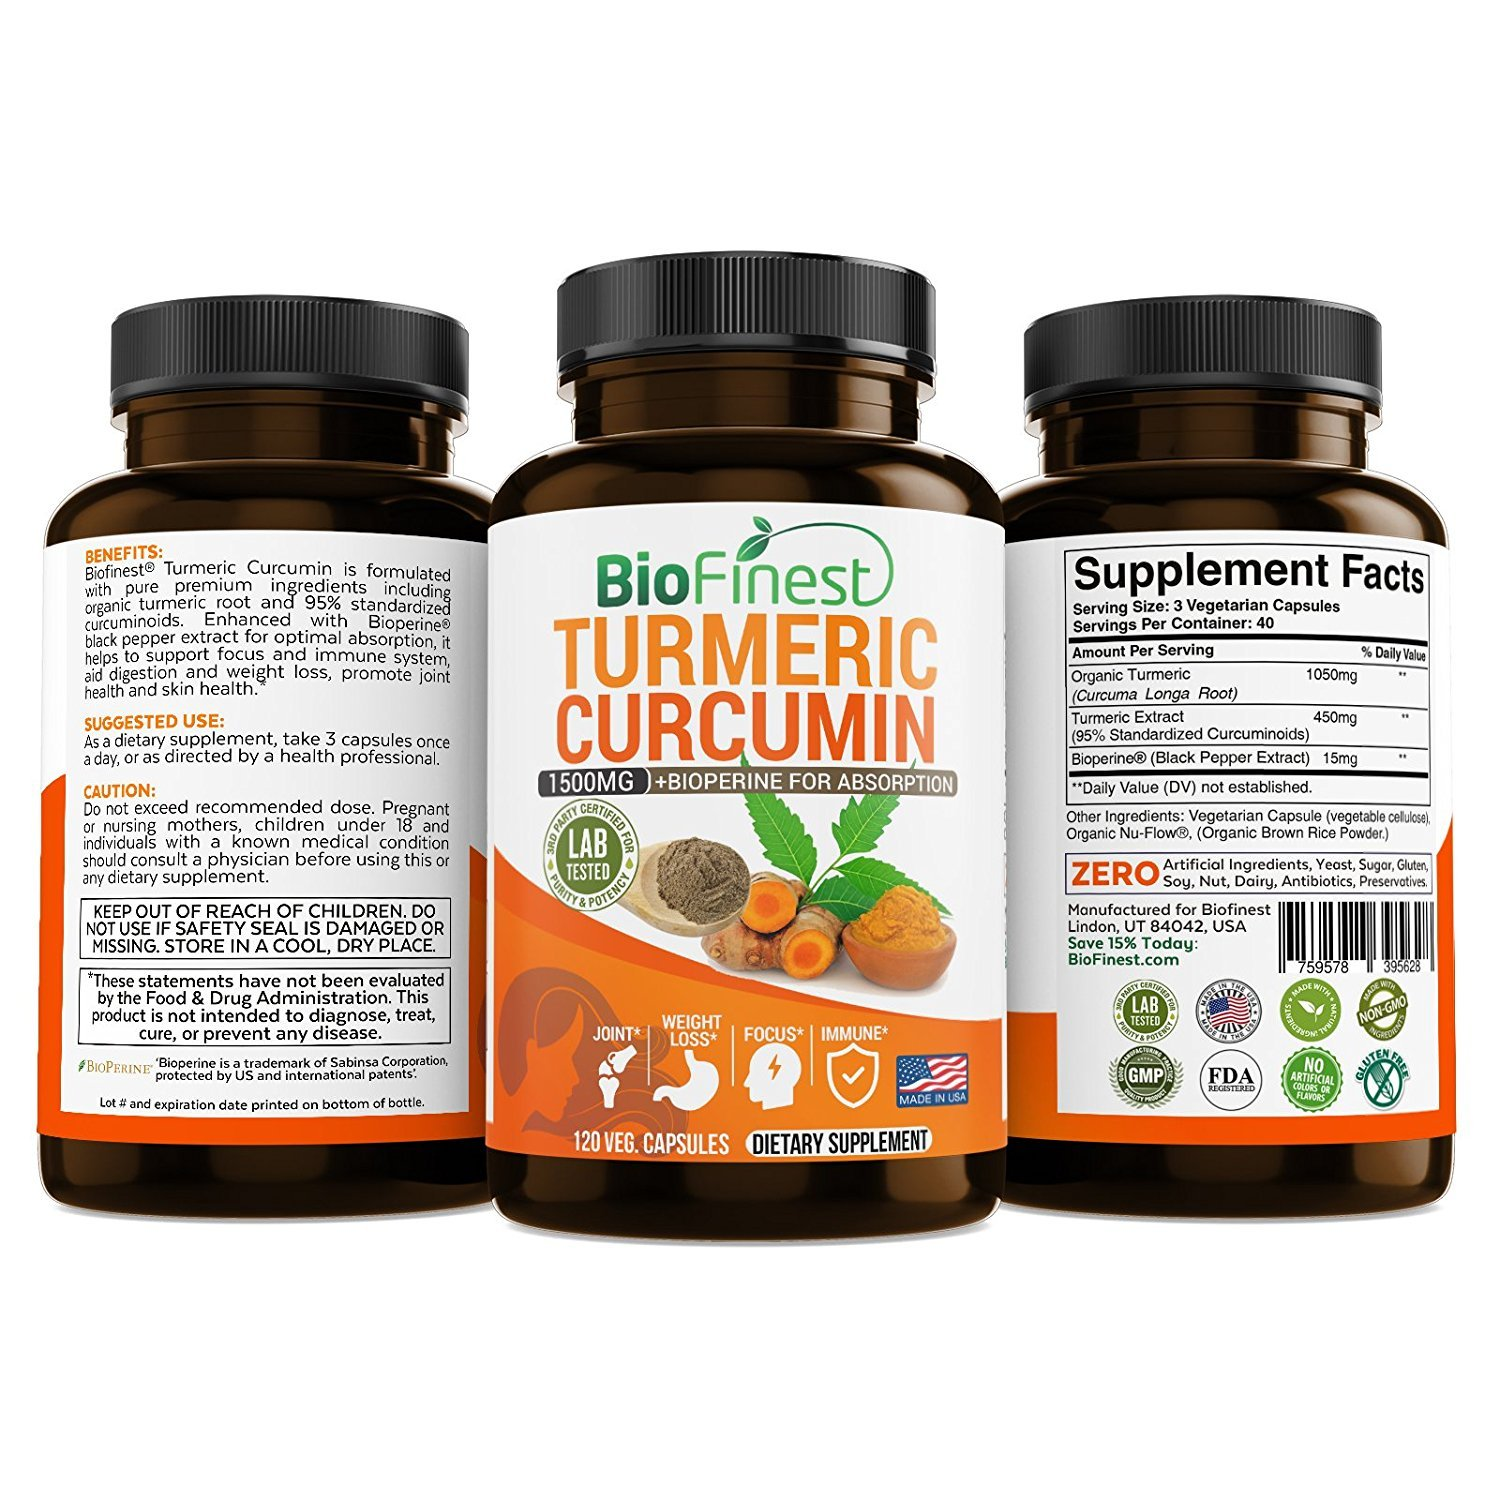 Biofinest Turmeric Curcumin - 1500mg with Bioperine Black Pepper - Made in  USA - For Weight Loss, Joints Support and Anti Aging Supplement with 95%